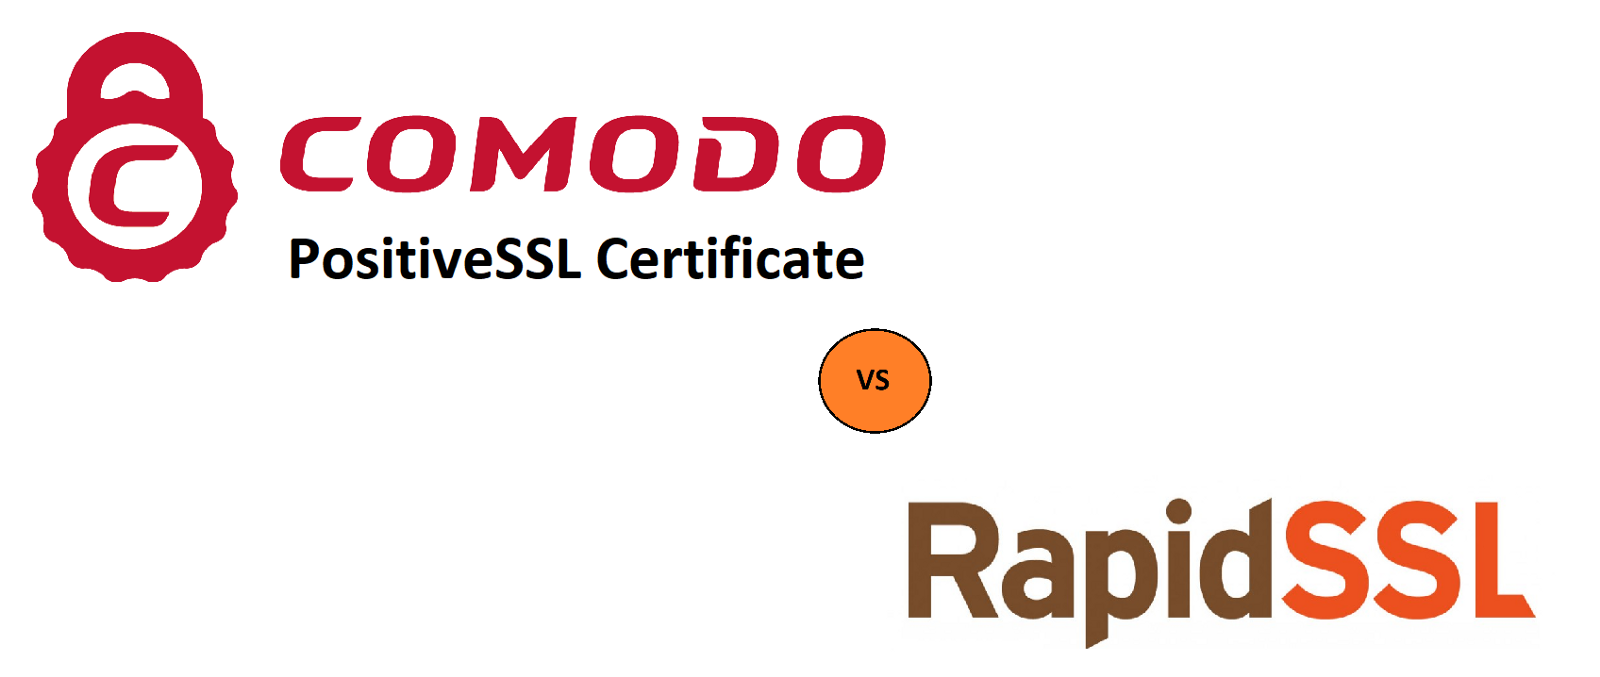 Comodo Positivessl Vs Rapidssl Certificate Understanding The